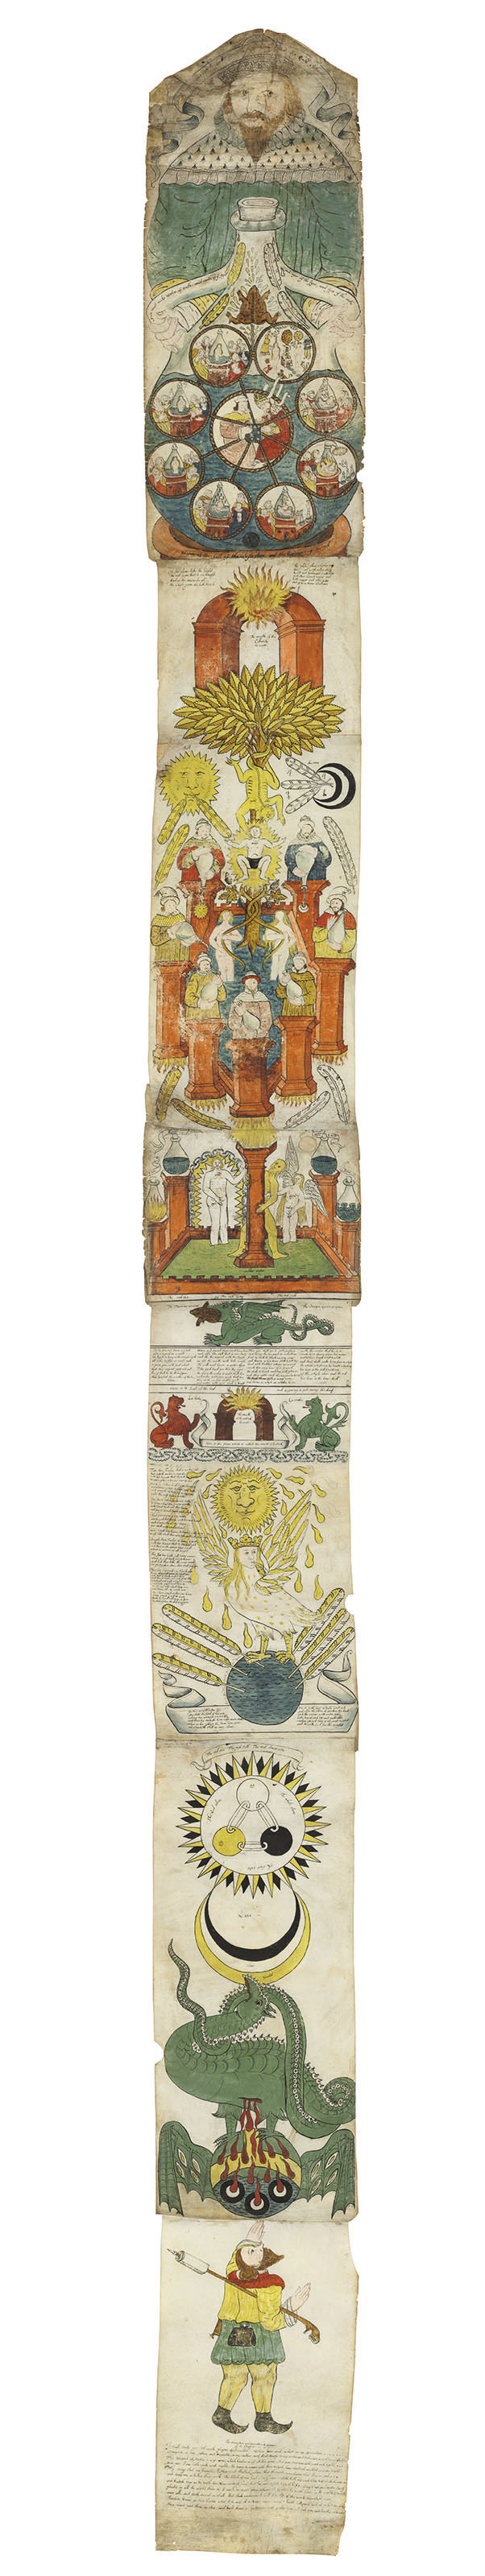 THE RIPLEY SCROLL, an illustrated alchemical manuscript, in English and Latin, on vellum, England [perhaps Manchester?] 1624